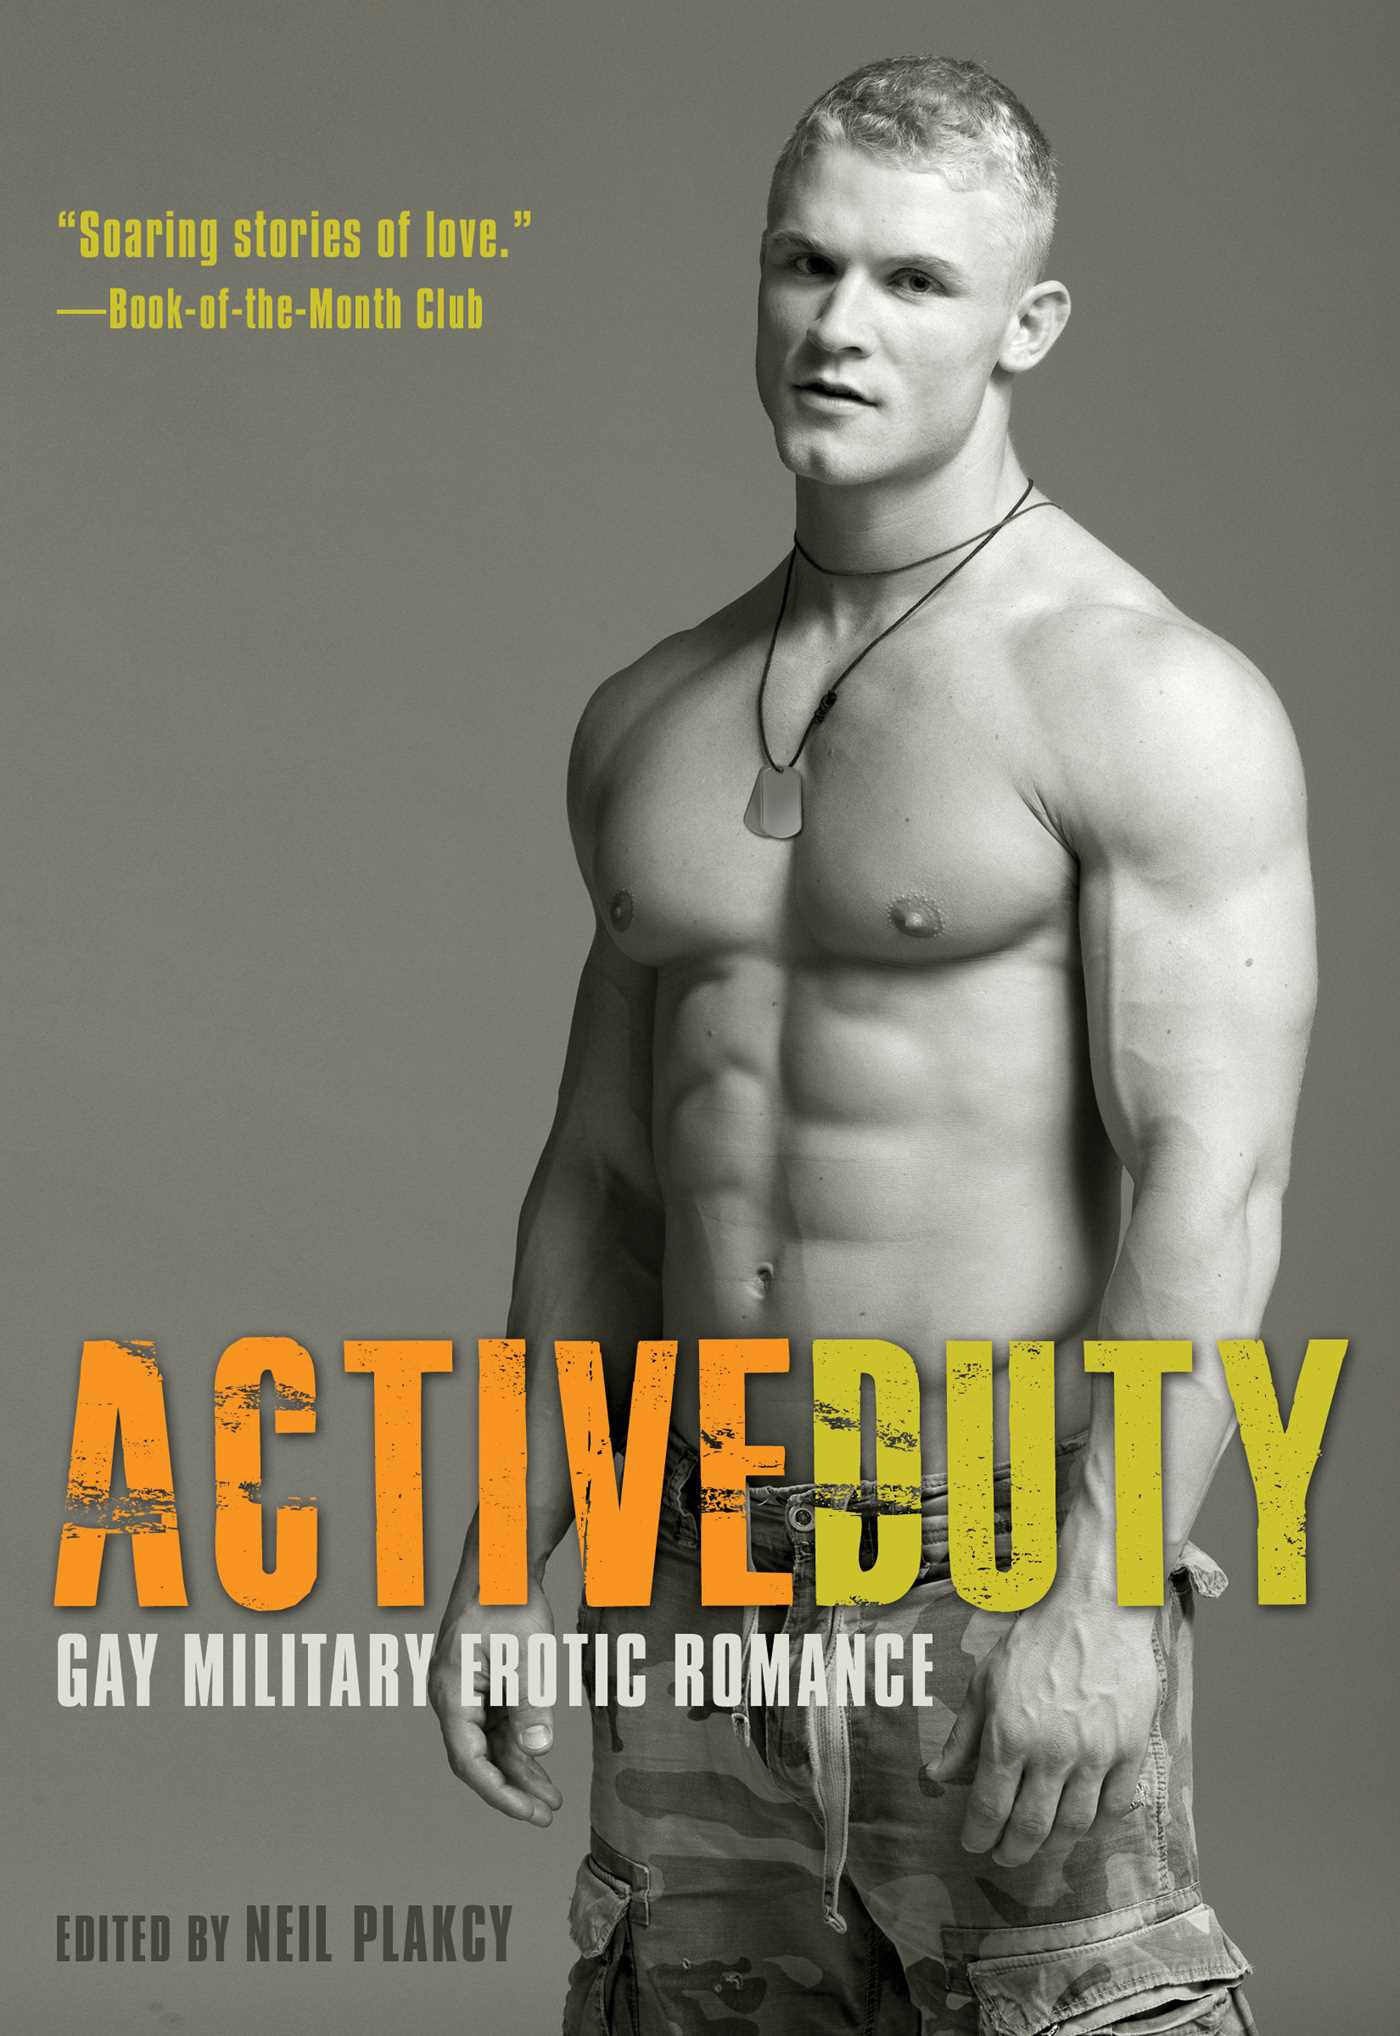 Hot gay military active duty men videos